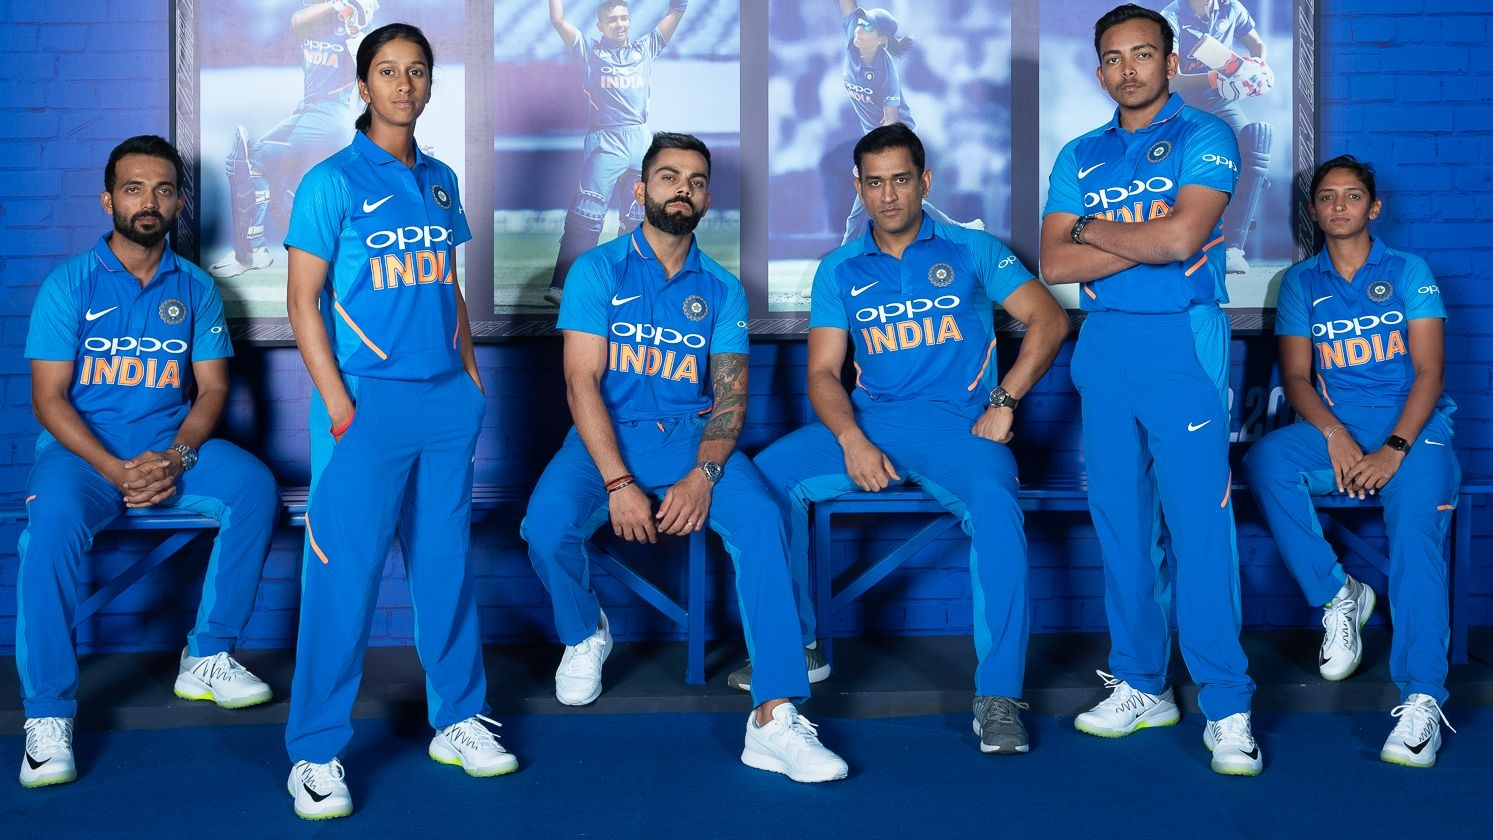 cf6251cc675 India World Cup 2019 New Jersey  Here s a Look at the Features of Team  India Jersey at Cricket World Cup